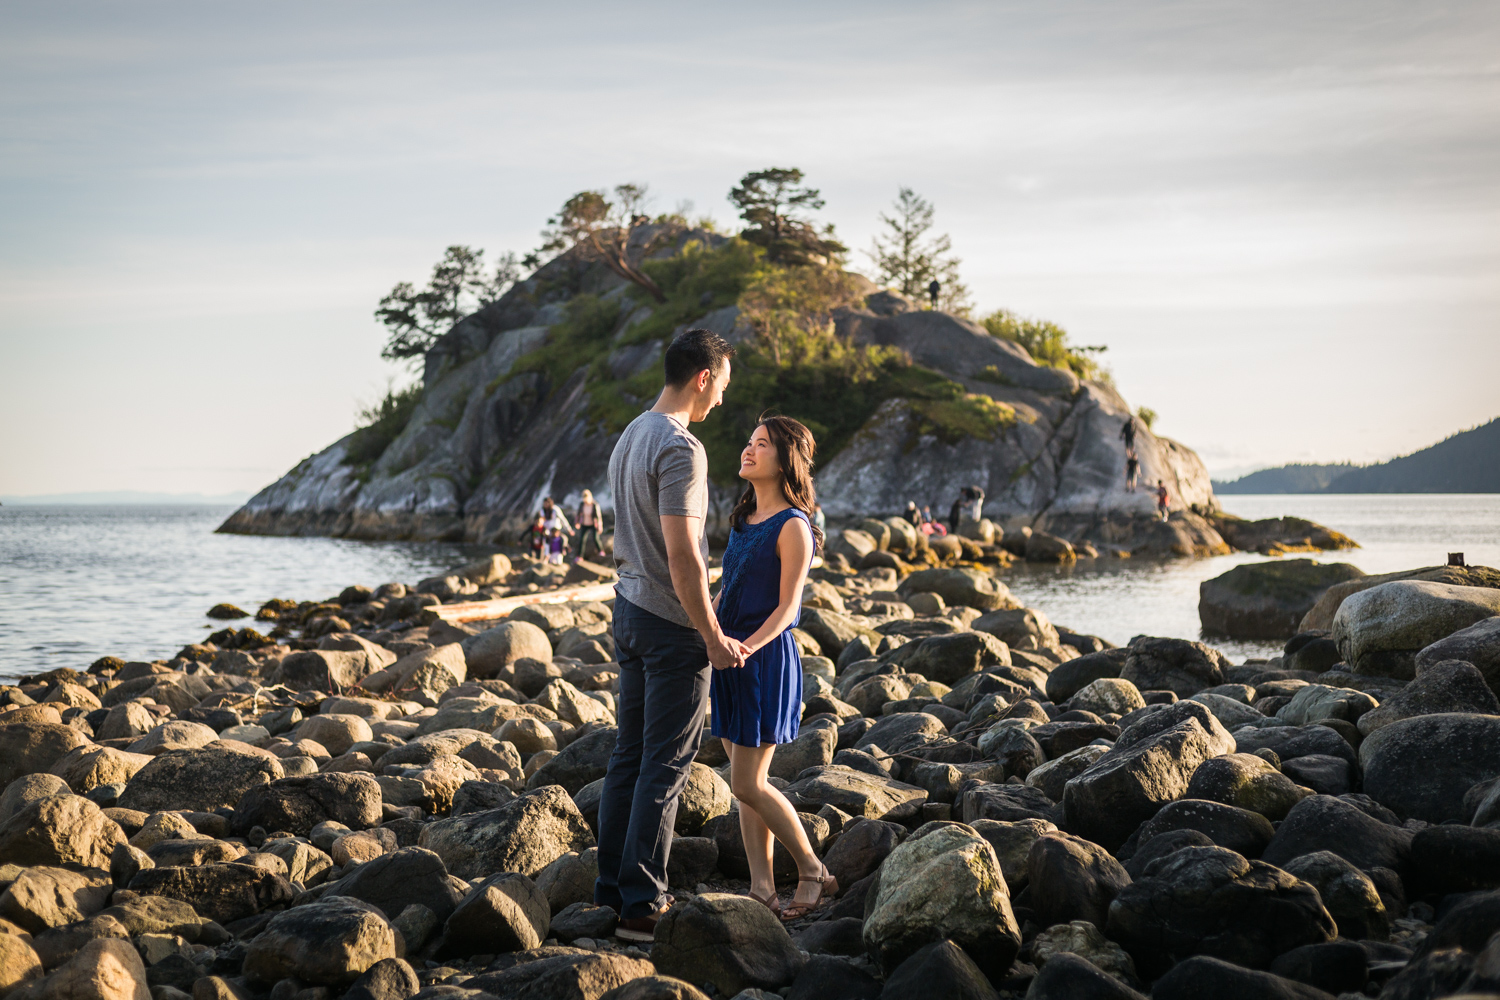 PORTRAITS AT WHYTECLIFF PARK – TINA & SHERMAN